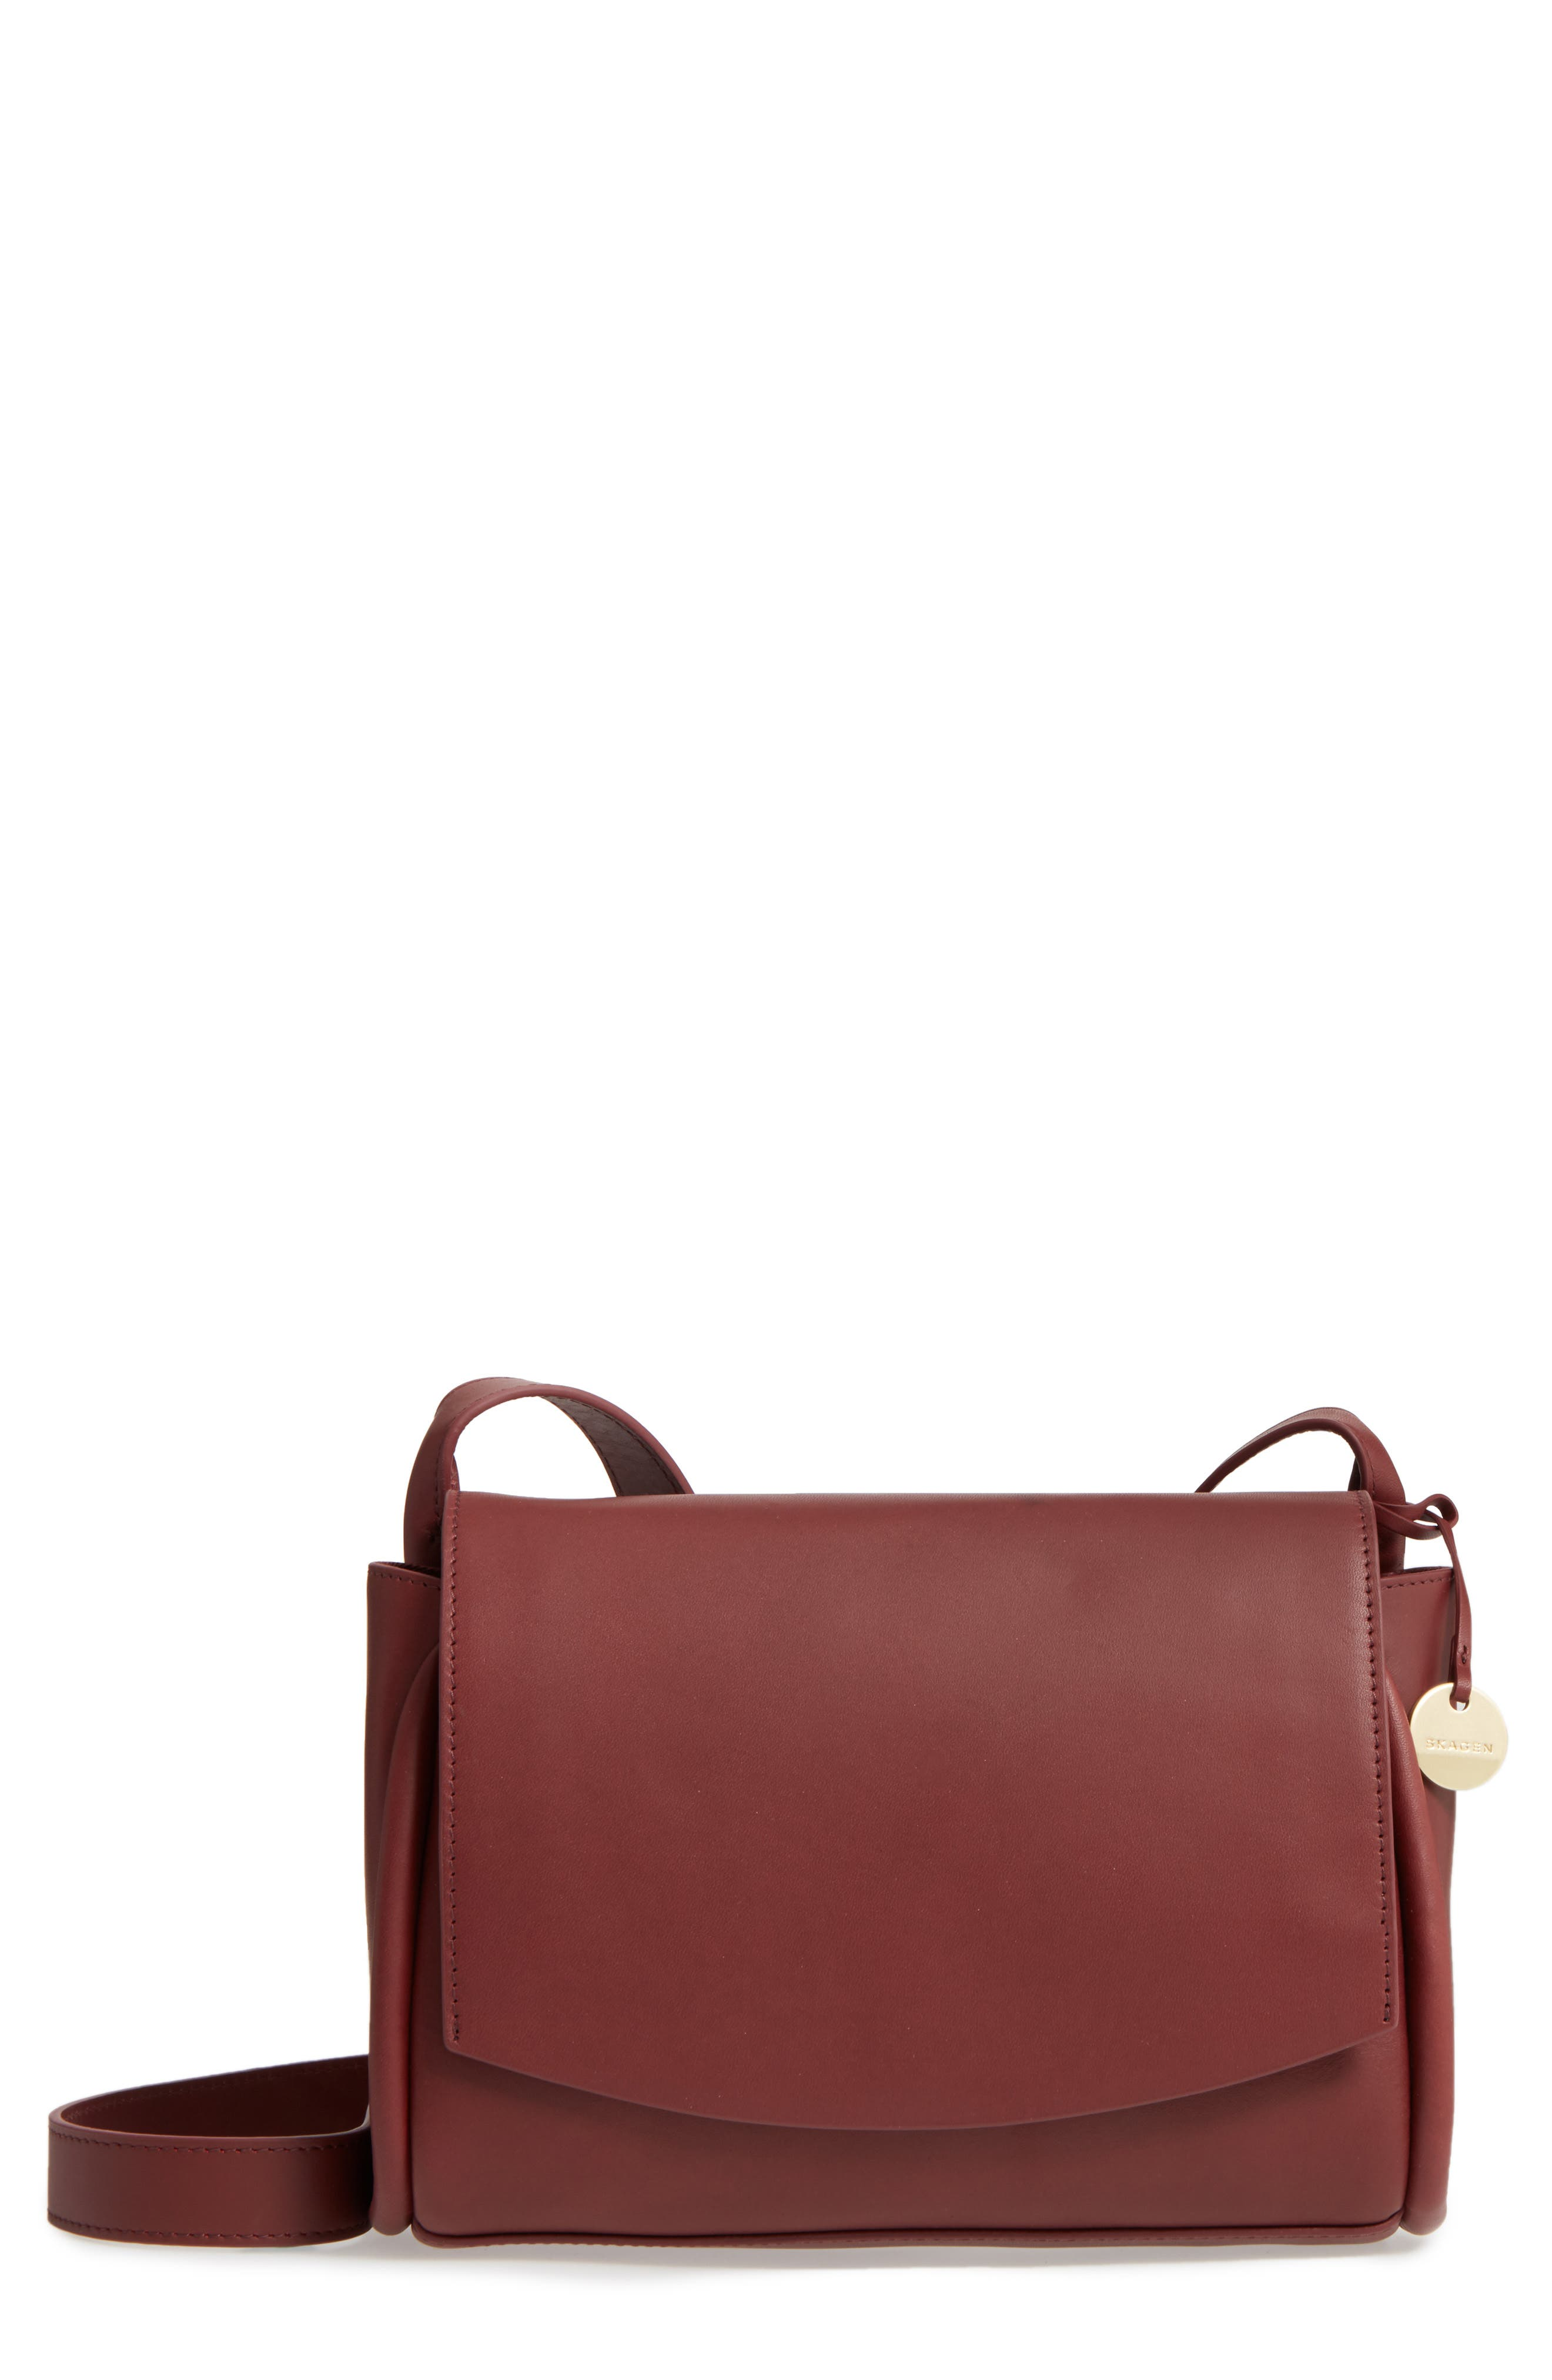 Main Image - Skagen Sylvi Leather Crossbody Bag